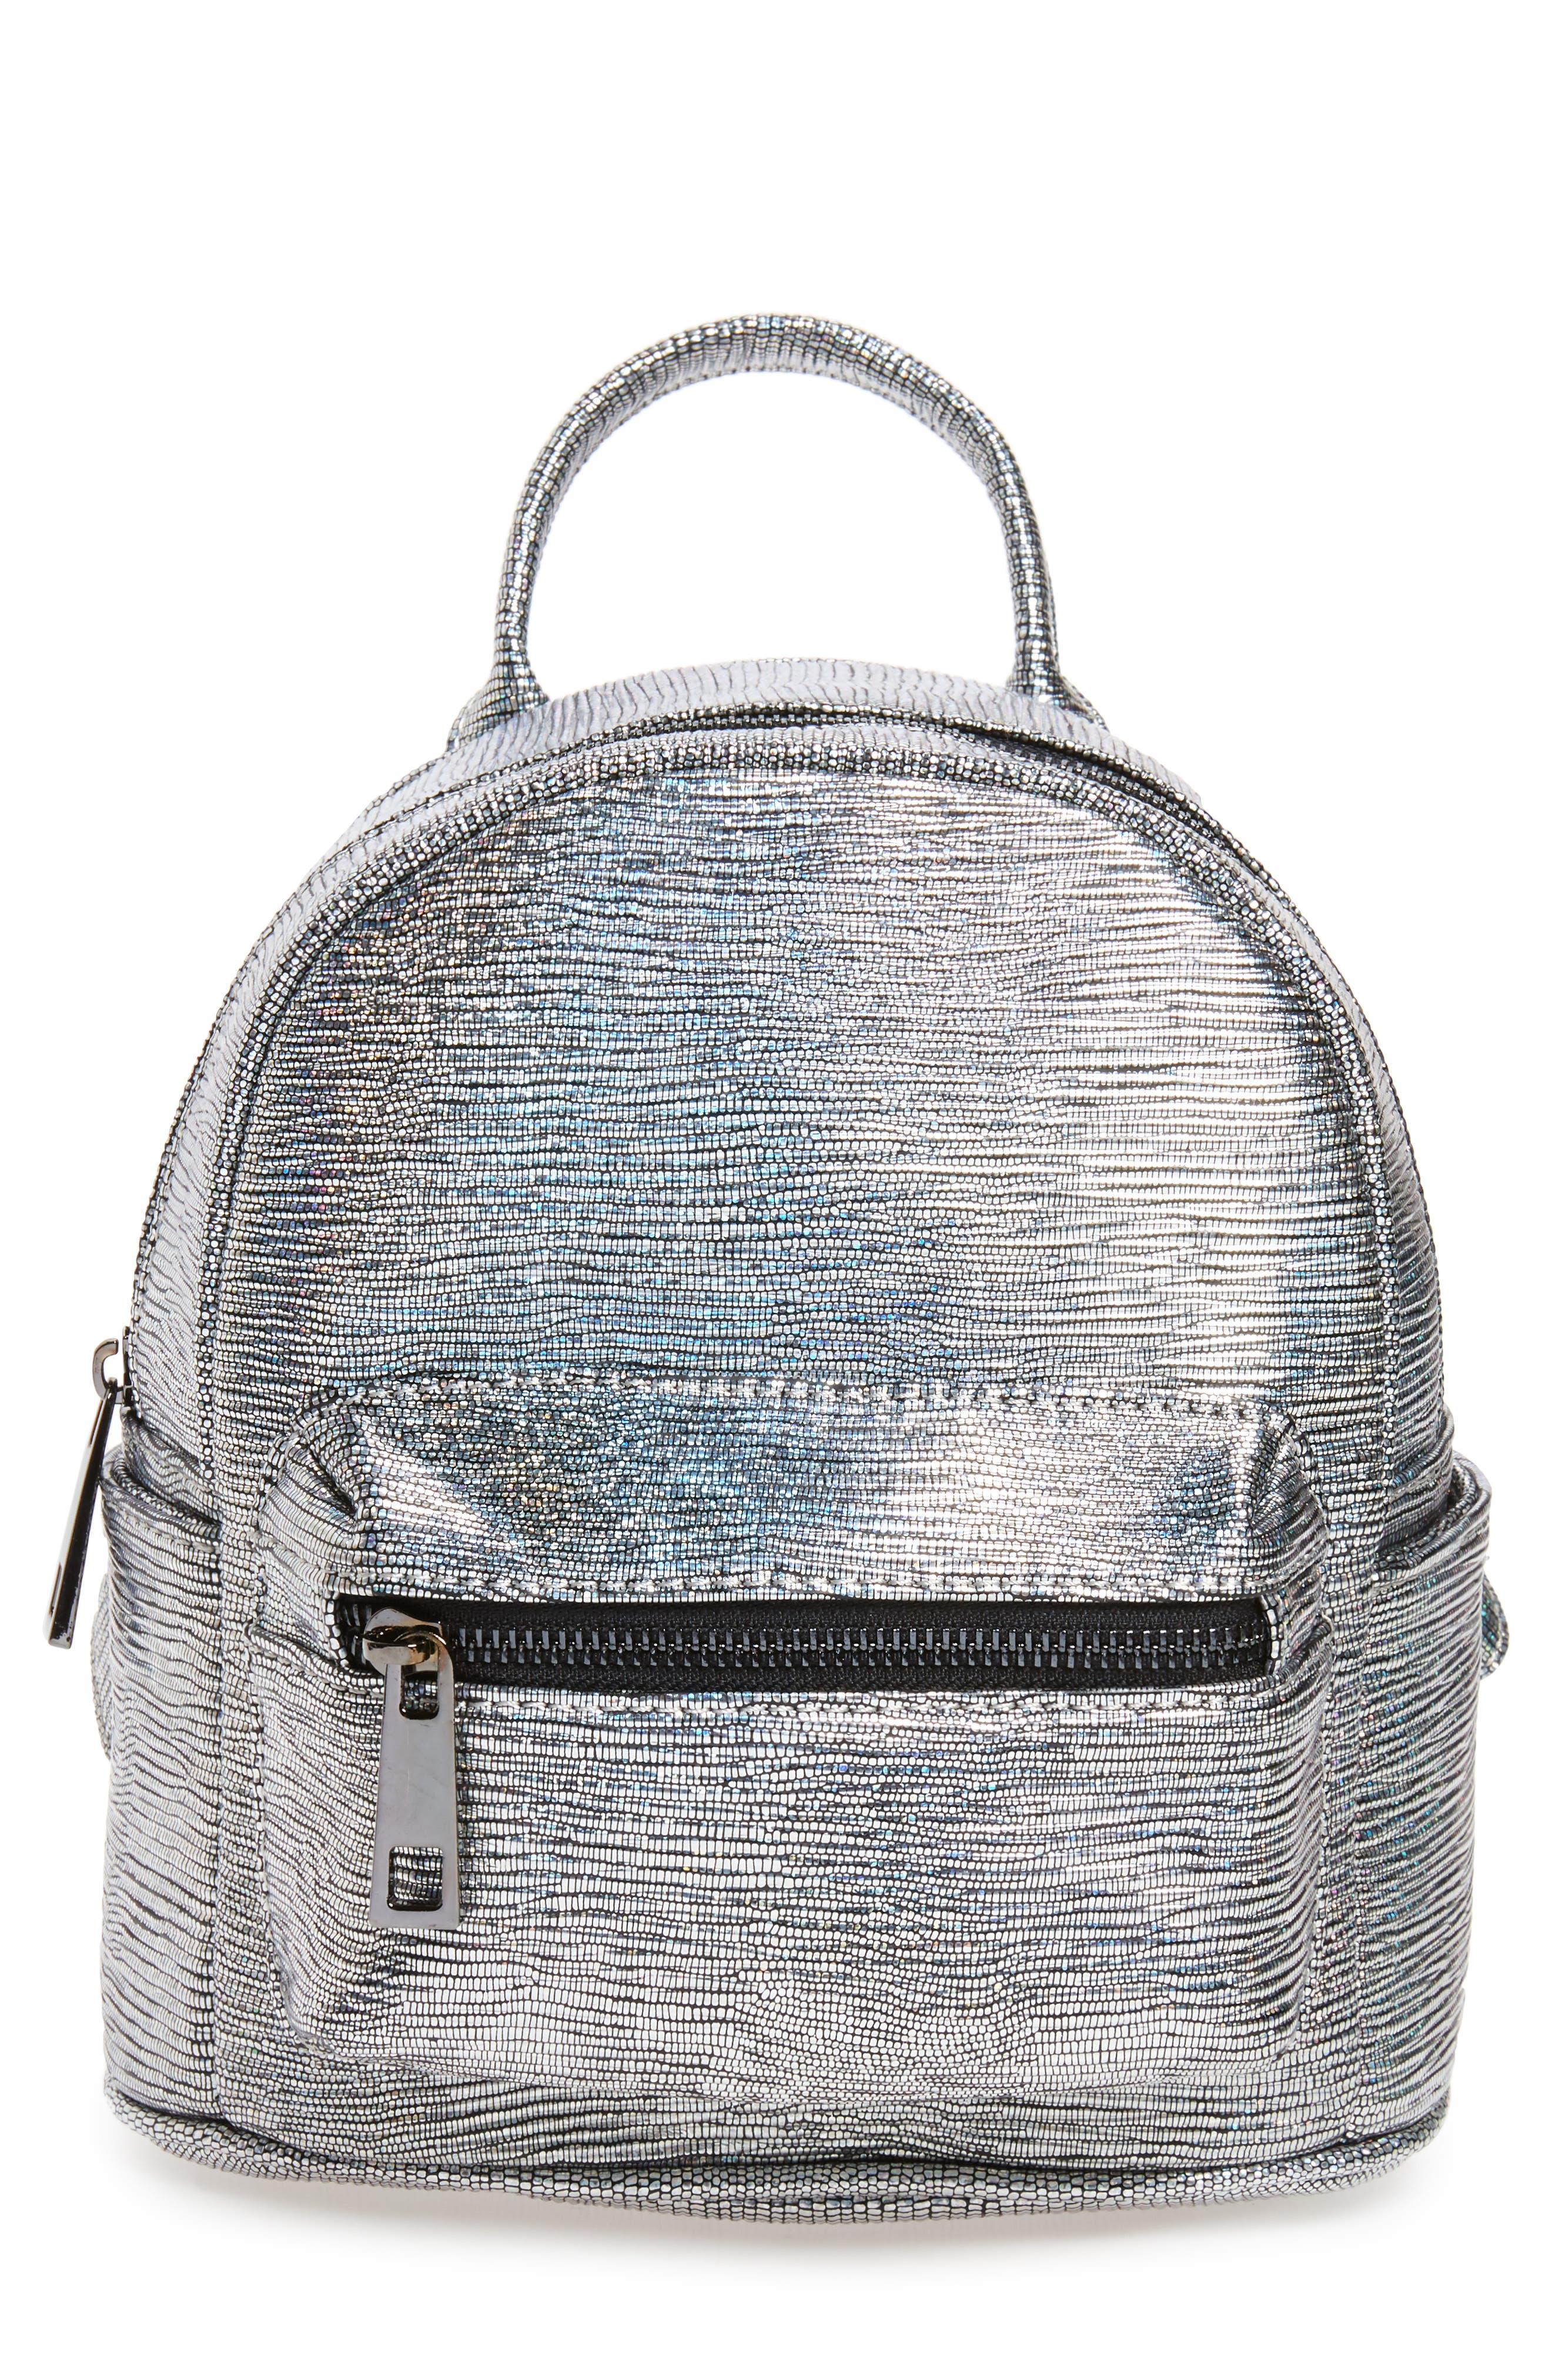 Alternate Image 1 Selected - Street Level Faux Leather Backpack